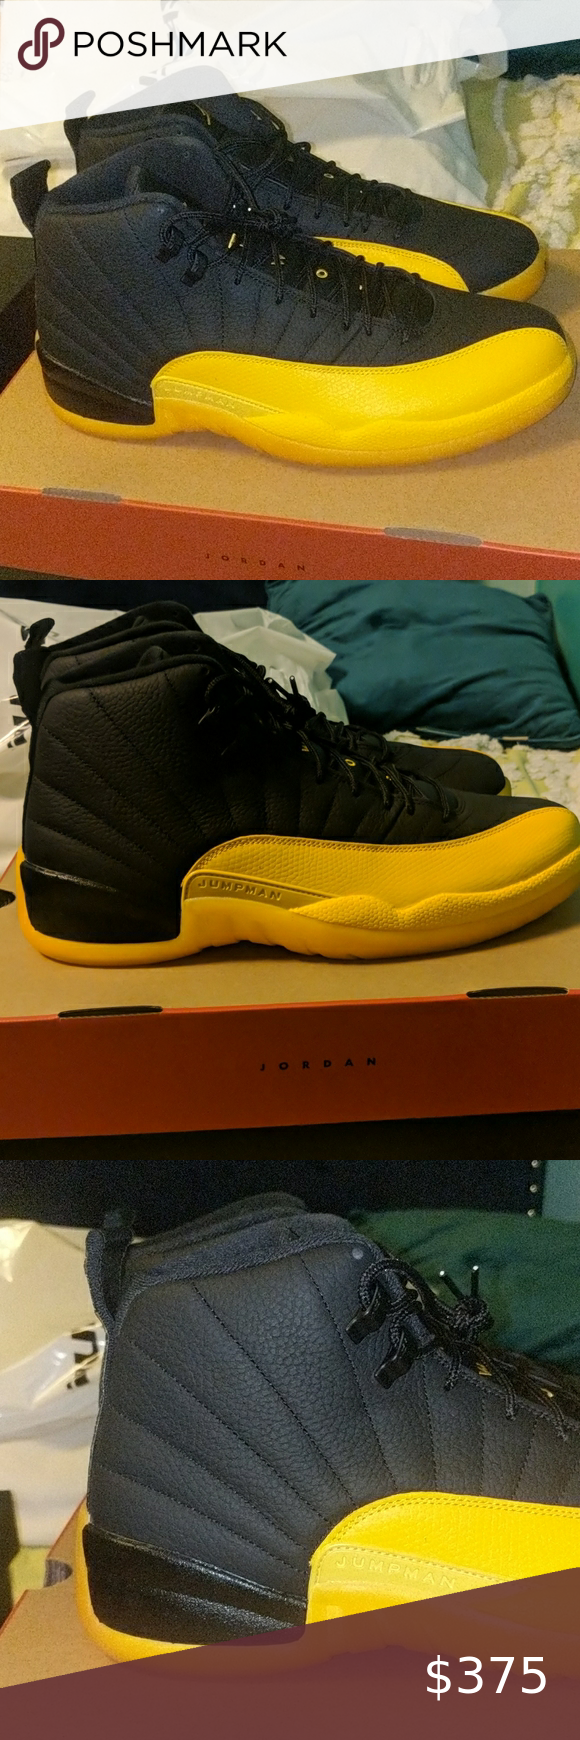 Air Jordan 12 Retro University Gold Air Jordan 12 Retro University Gold Men S Size 13 X2 Available New With Og All Dead In 2020 Air Jordan 12 Retro Air Jordans Retro